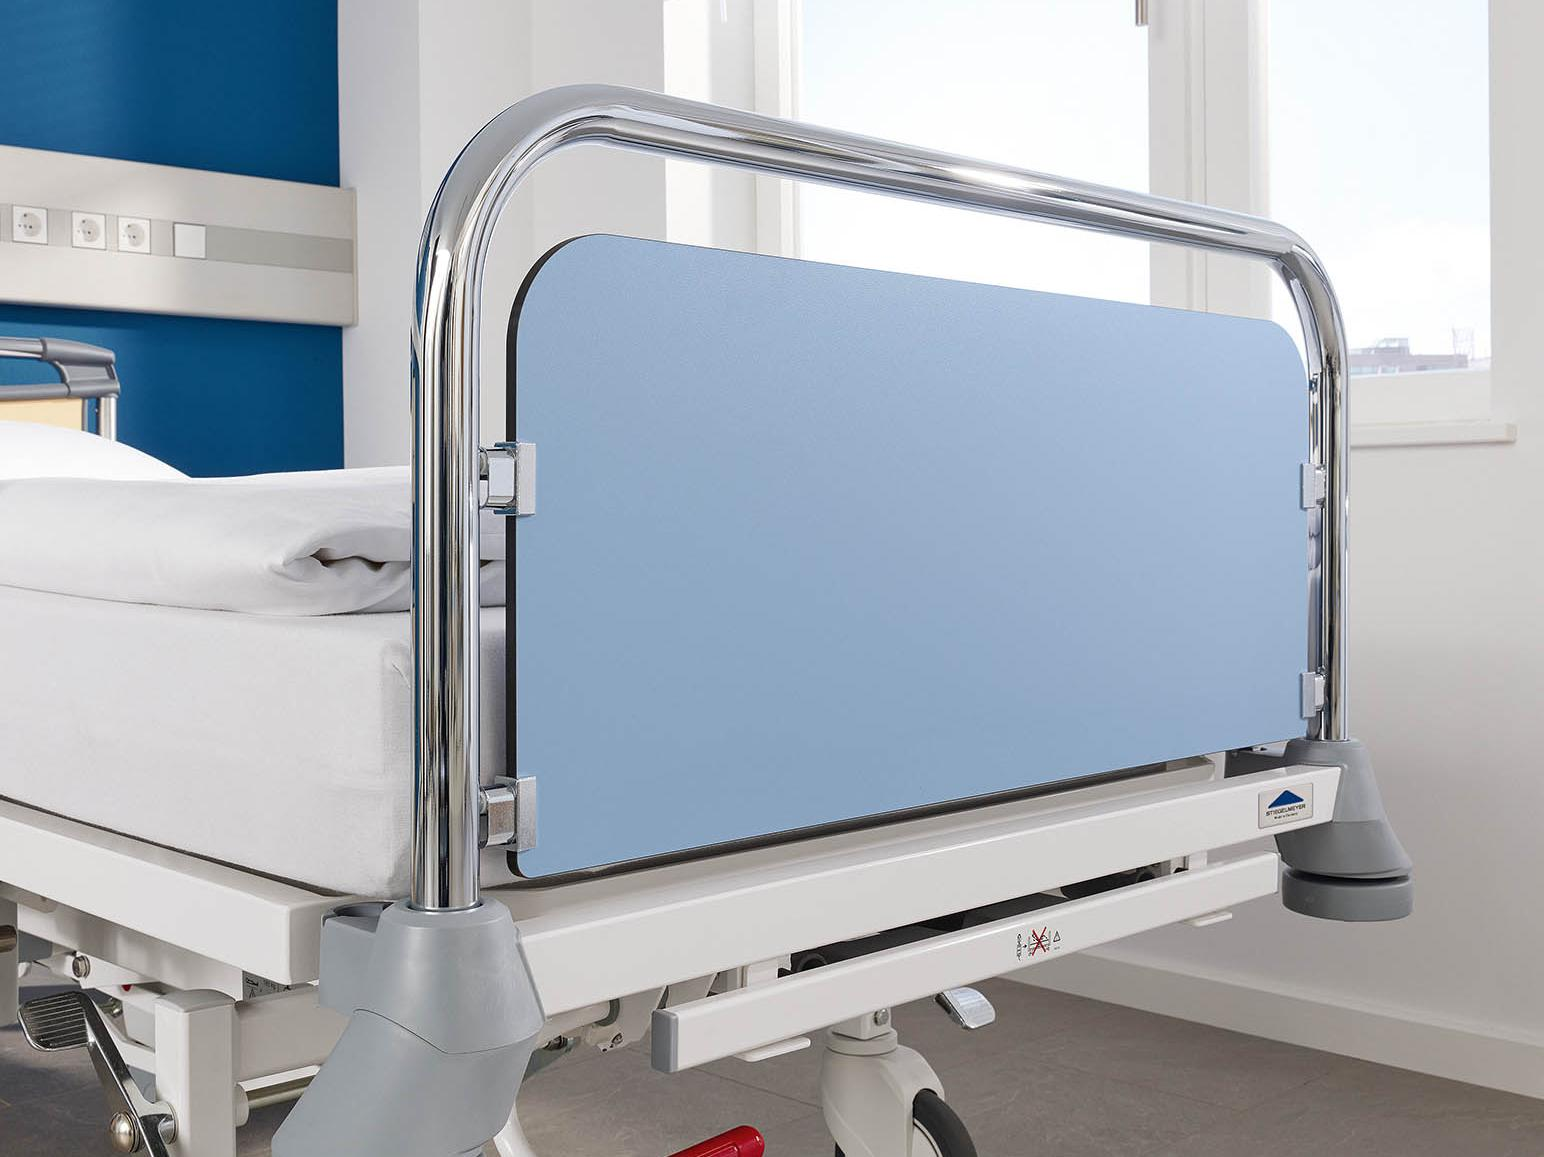 Classic head and footboard of the Deka hospital bed